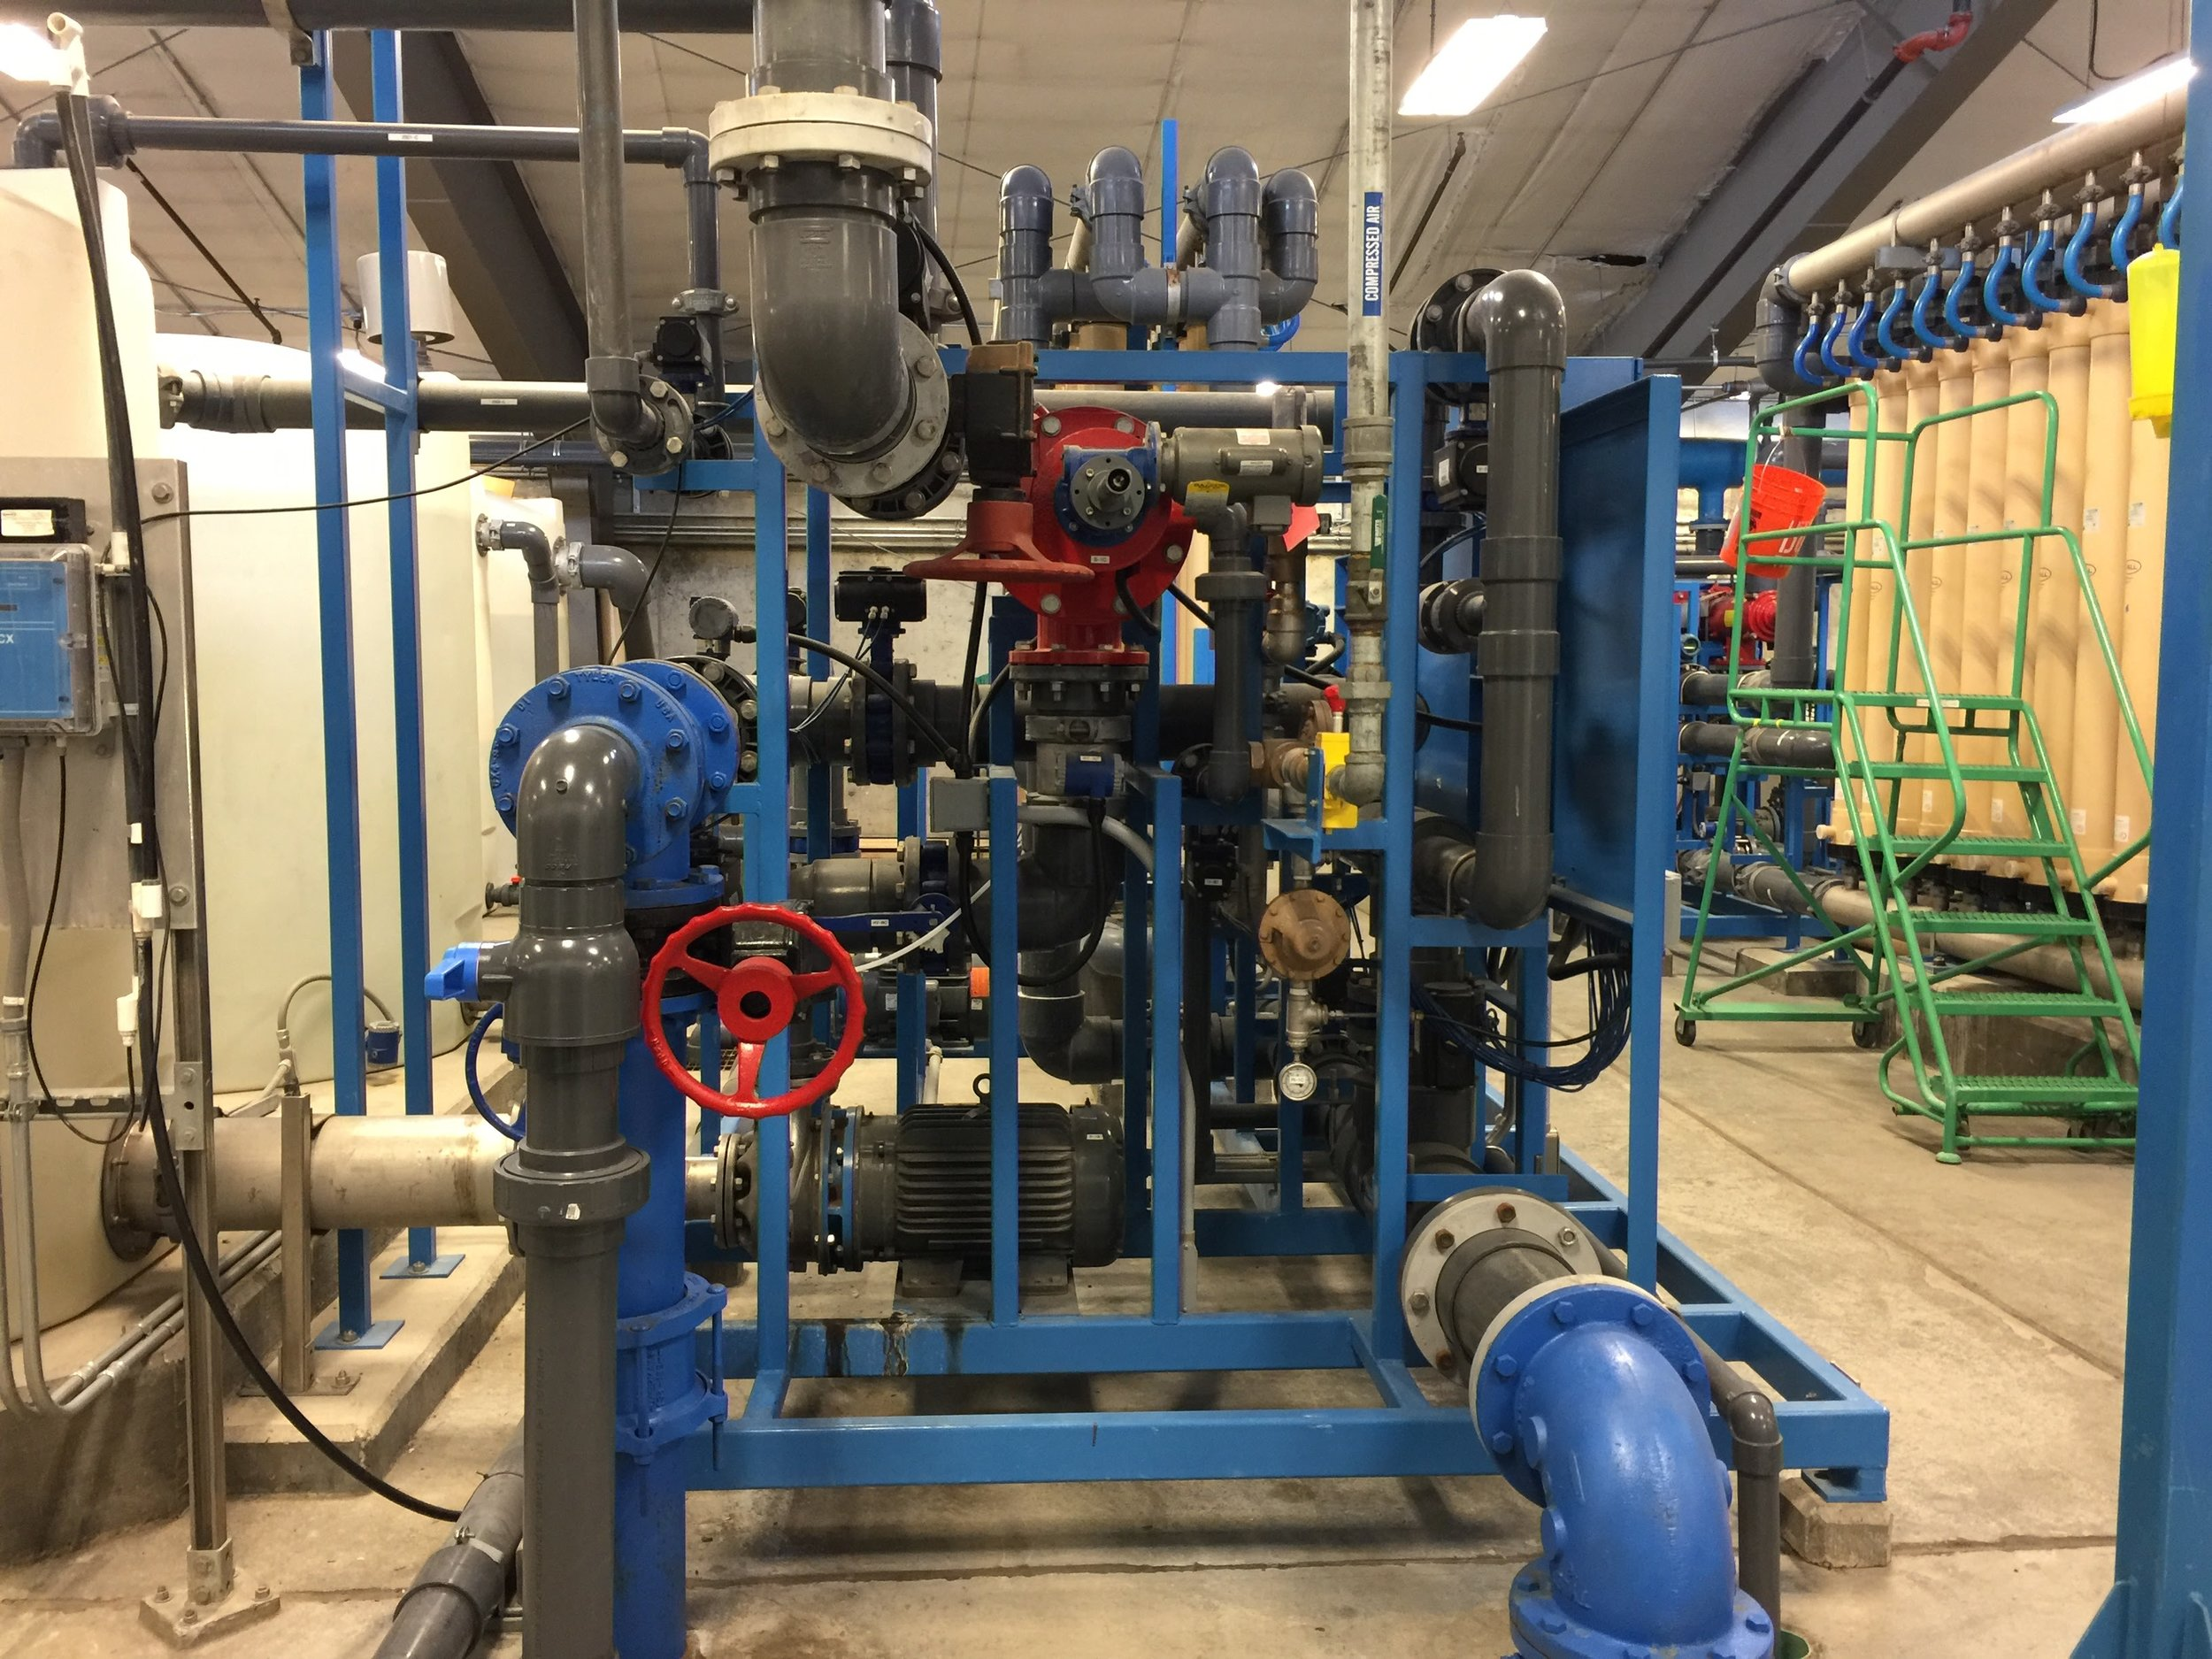 9. Control valve manifold for one treatment skid